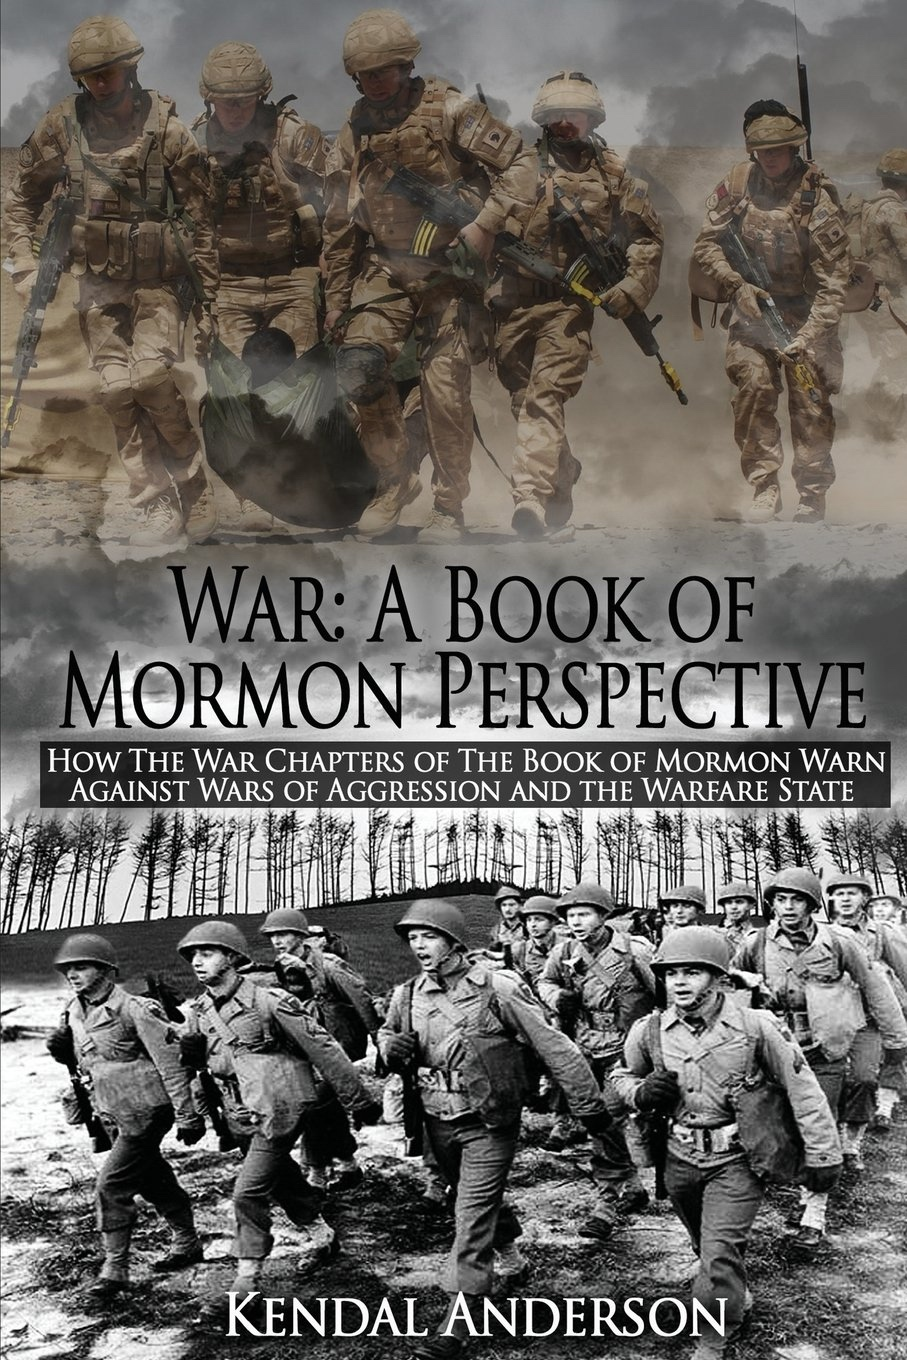 War: A Book of Mormon Perspective: How The War Chapters of the Book of Mormon Warn Against Wars of Aggression and the Warfare State, Anderson, Kendal